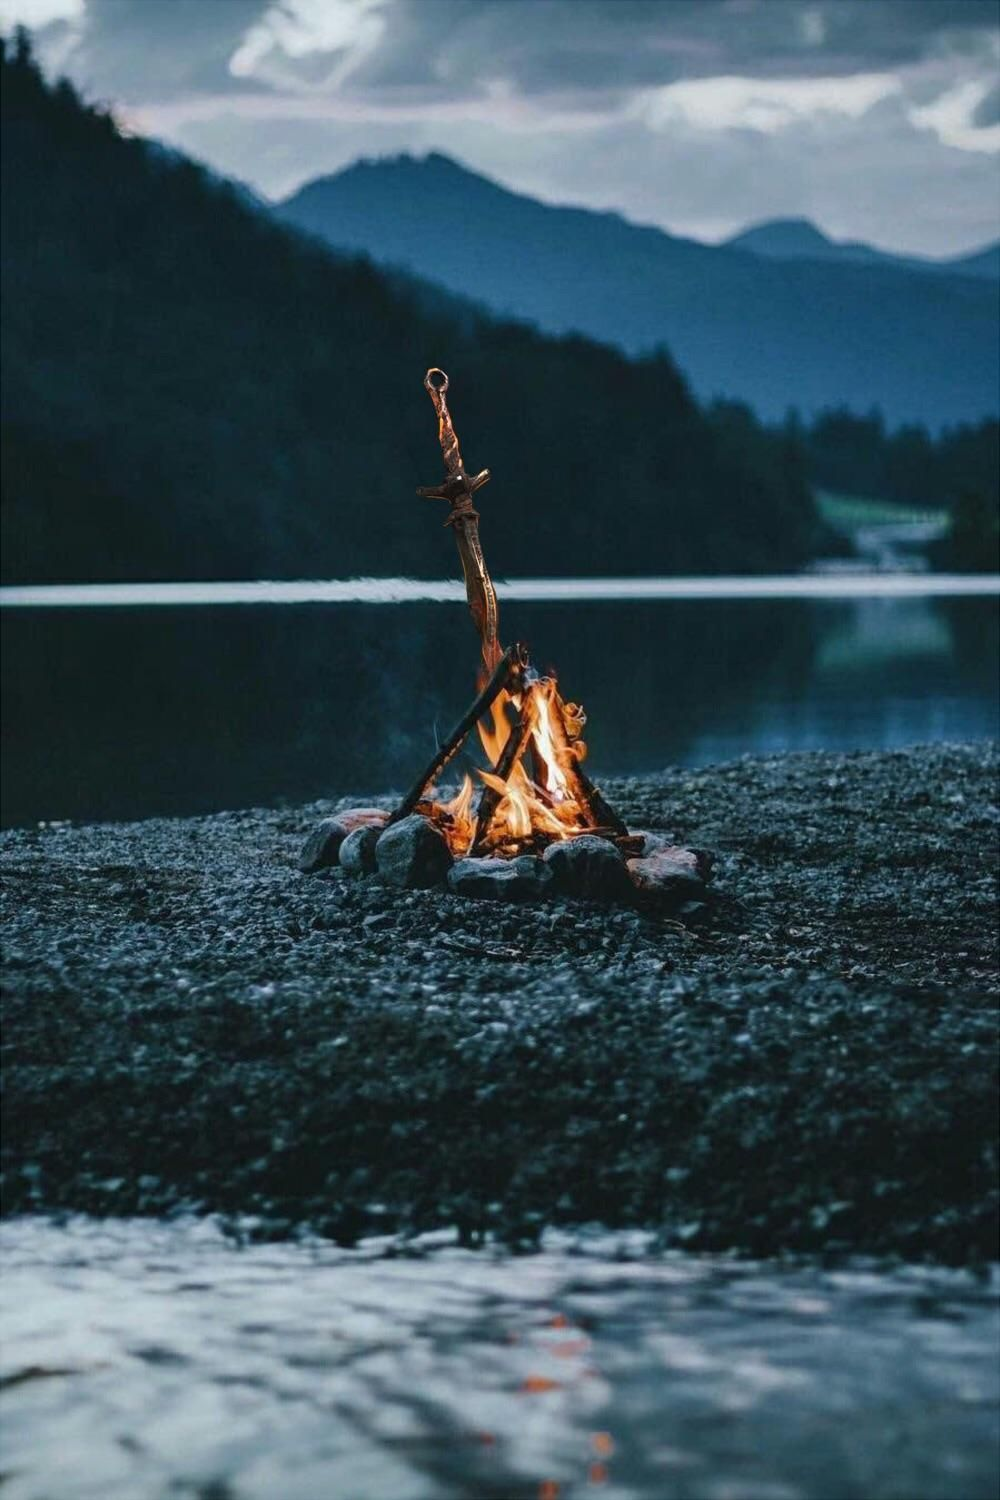 My Girlfriend Made This Campfire Picture Into A Dark Souls